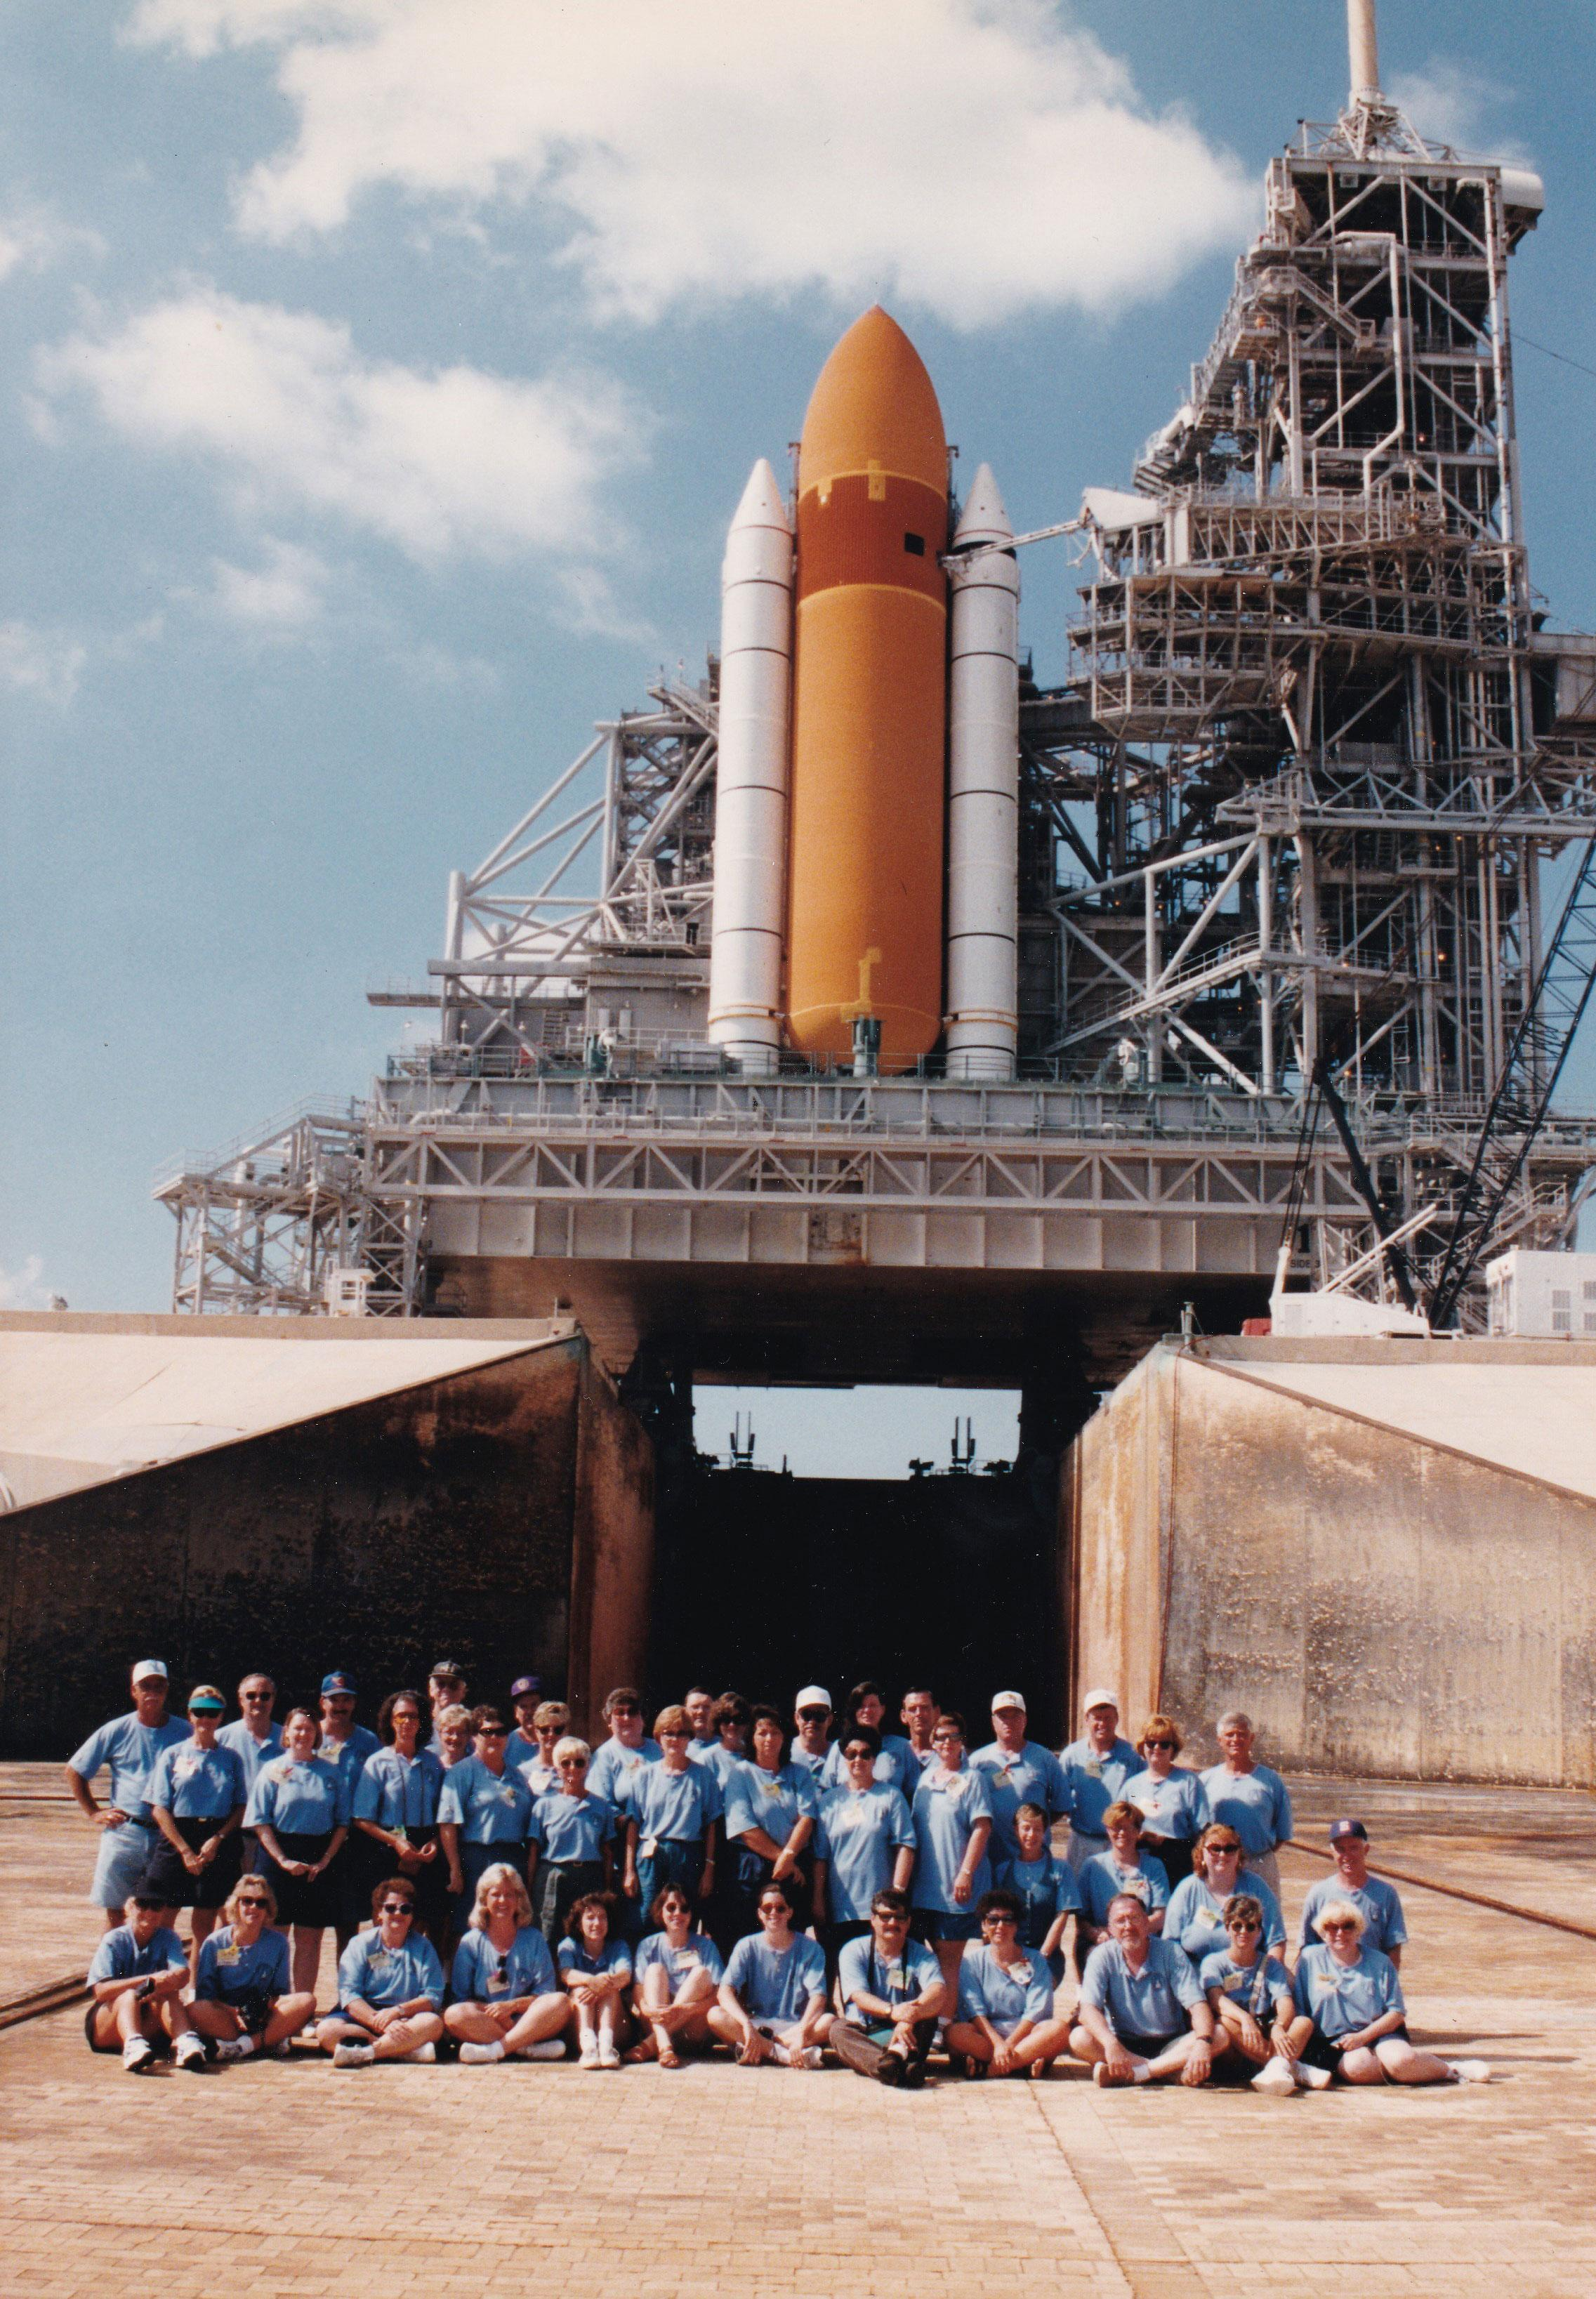 Space Shuttle Columbia on Launch Pad